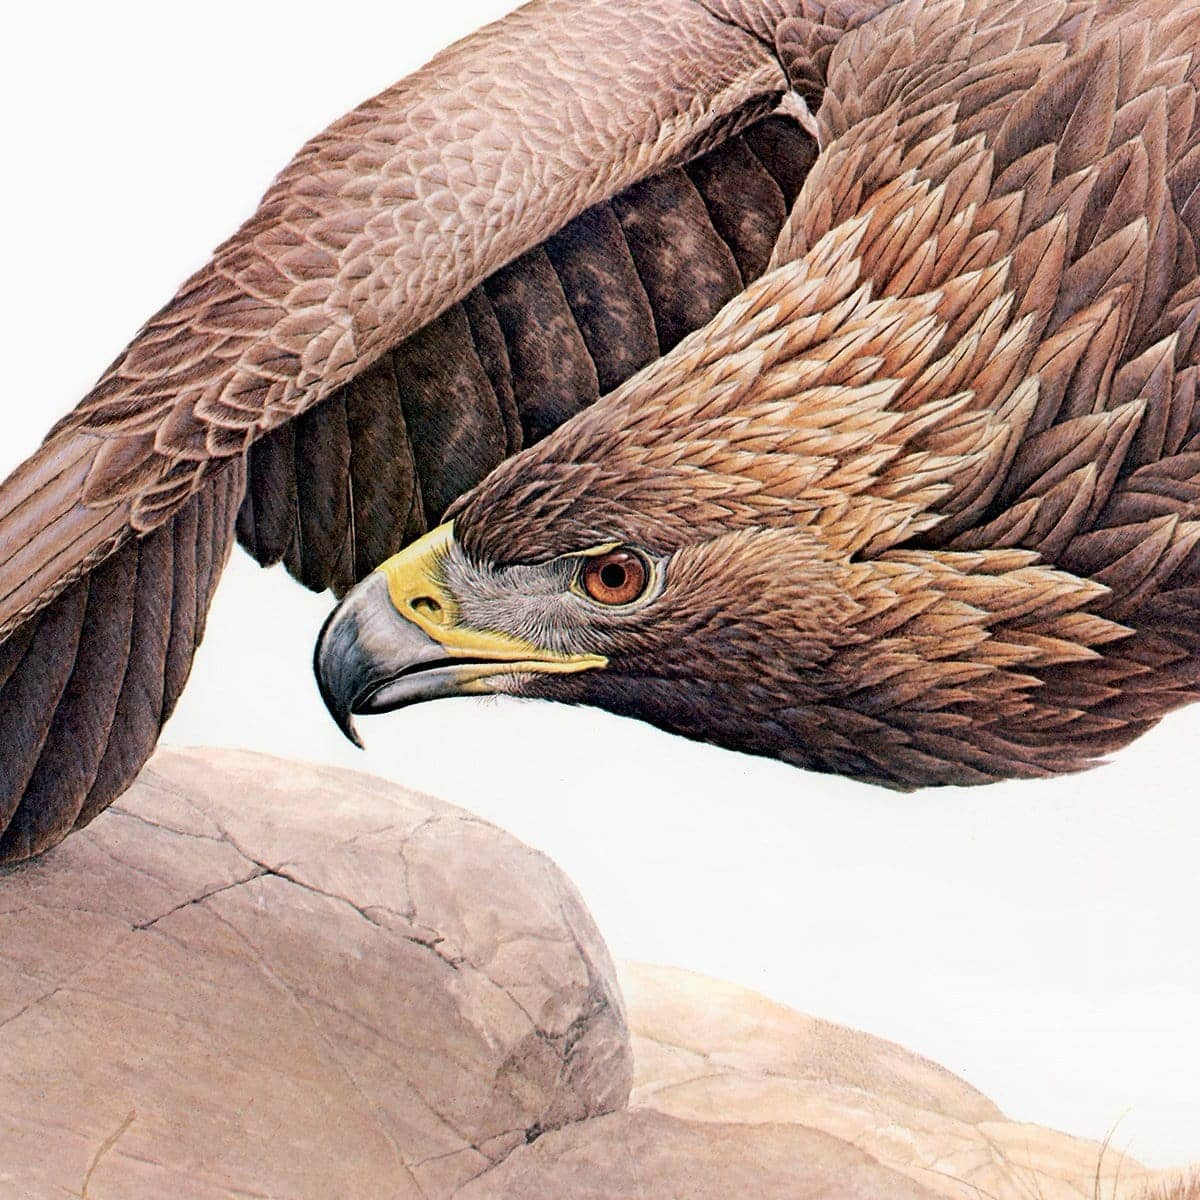 Golden Eagle - Art Print by Glen Loates from the Glen Loates Store